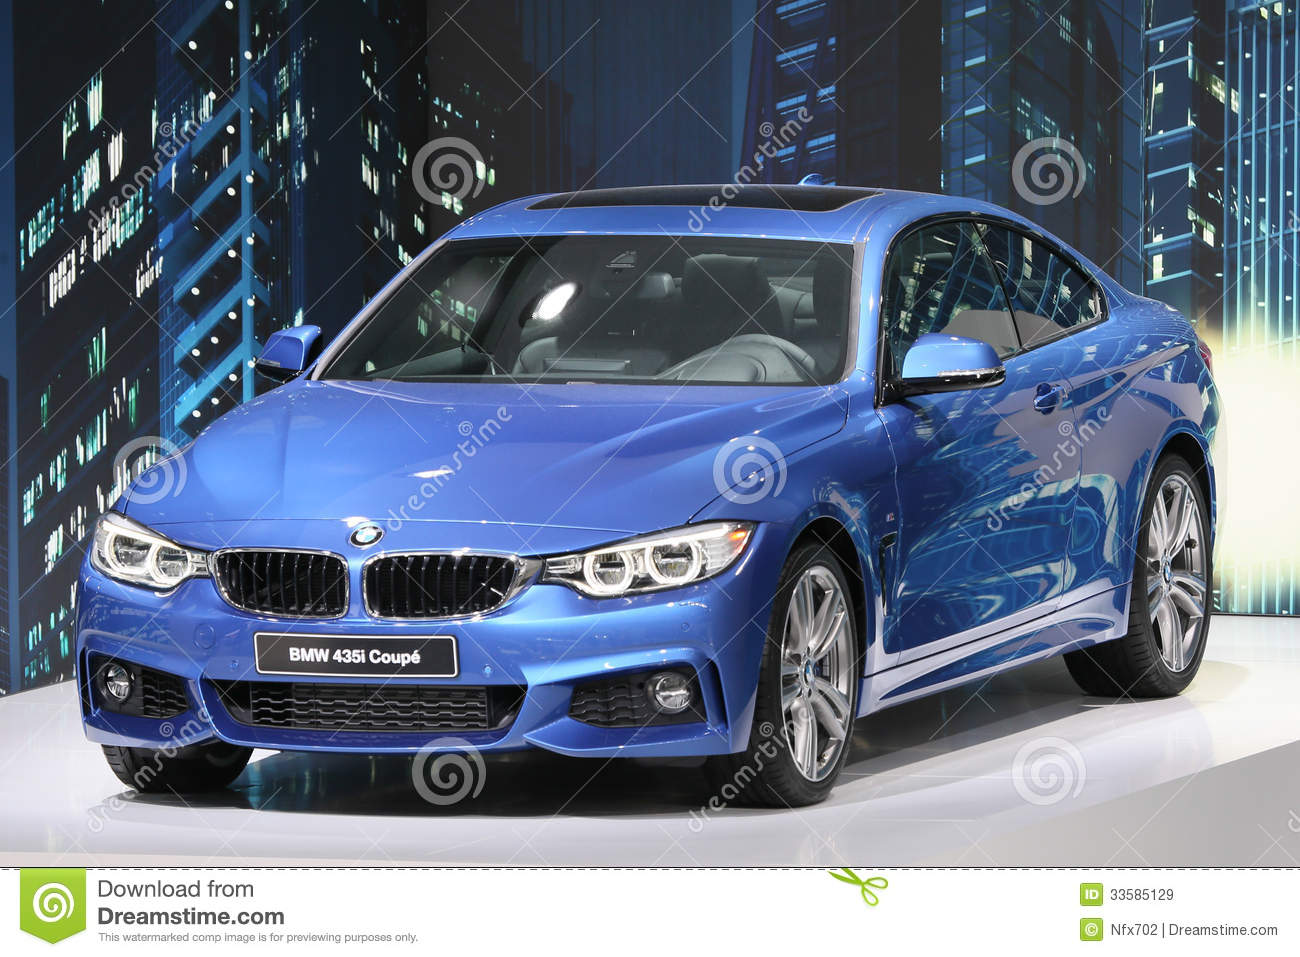 bmw 435i 4er coupe editorial stock image image 33585129. Black Bedroom Furniture Sets. Home Design Ideas